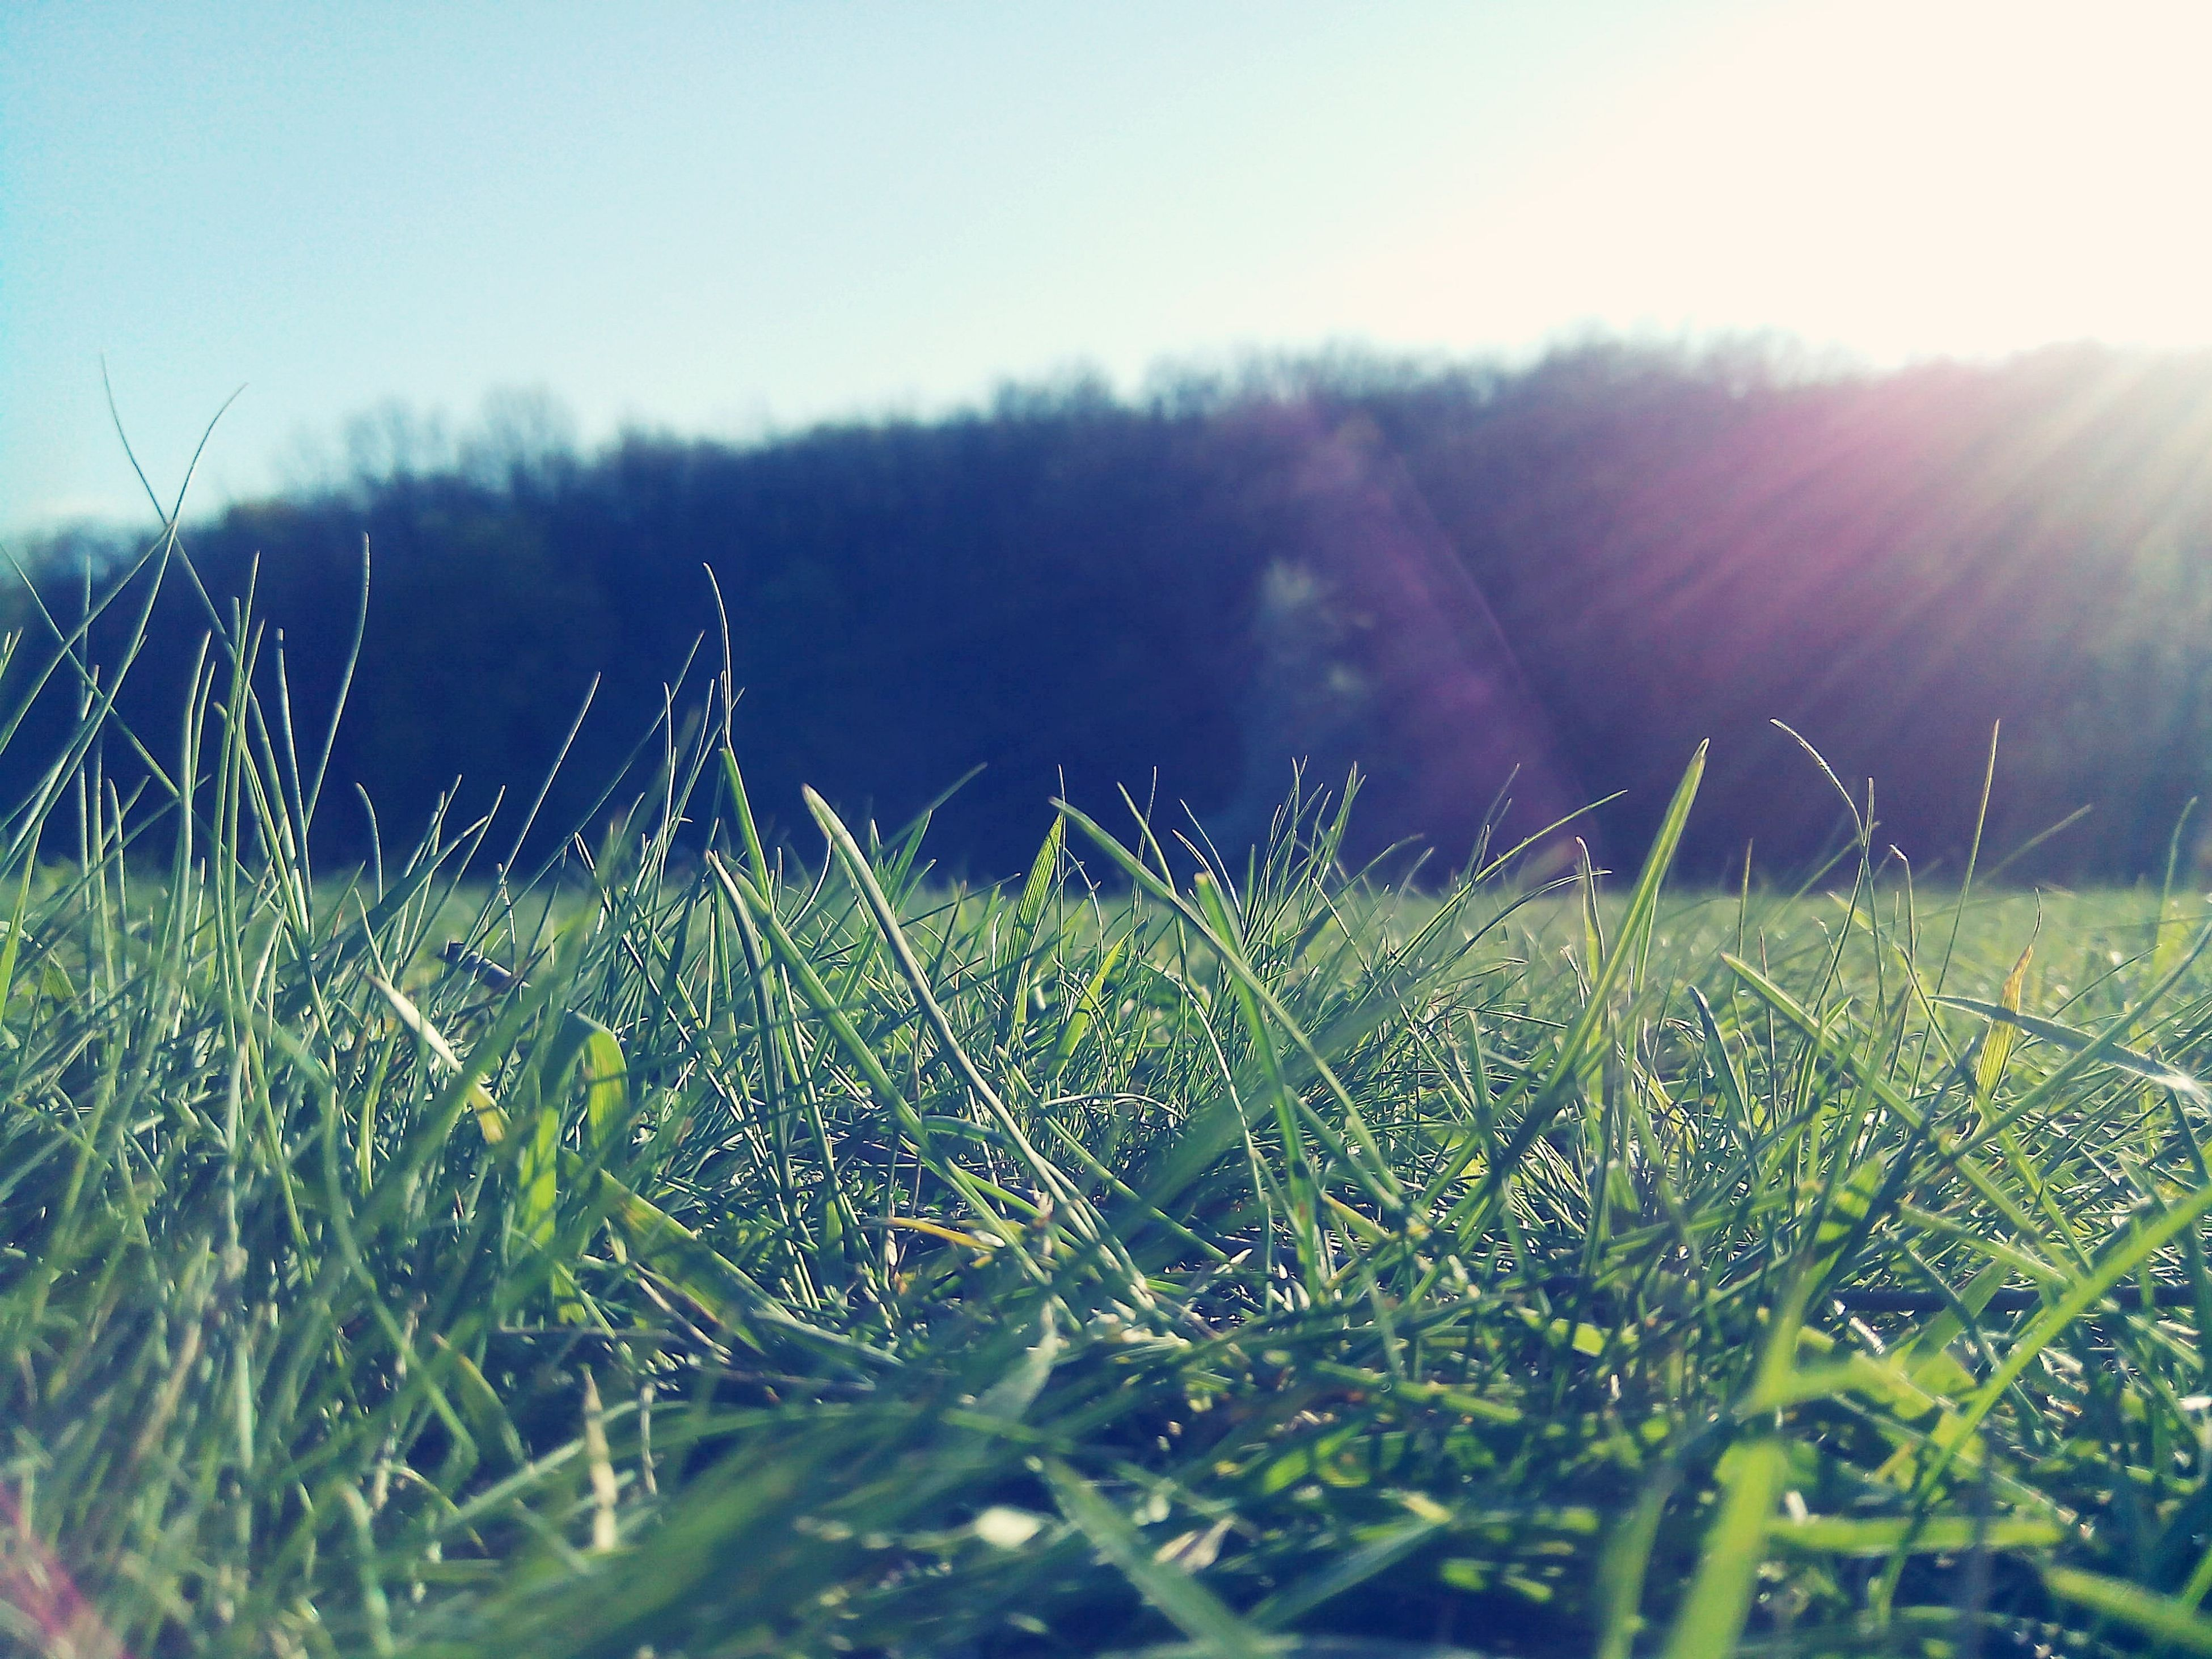 grass, field, growth, nature, tranquility, beauty in nature, plant, clear sky, drop, tranquil scene, close-up, landscape, focus on foreground, lens flare, sunlight, sun, blade of grass, scenics, rural scene, day